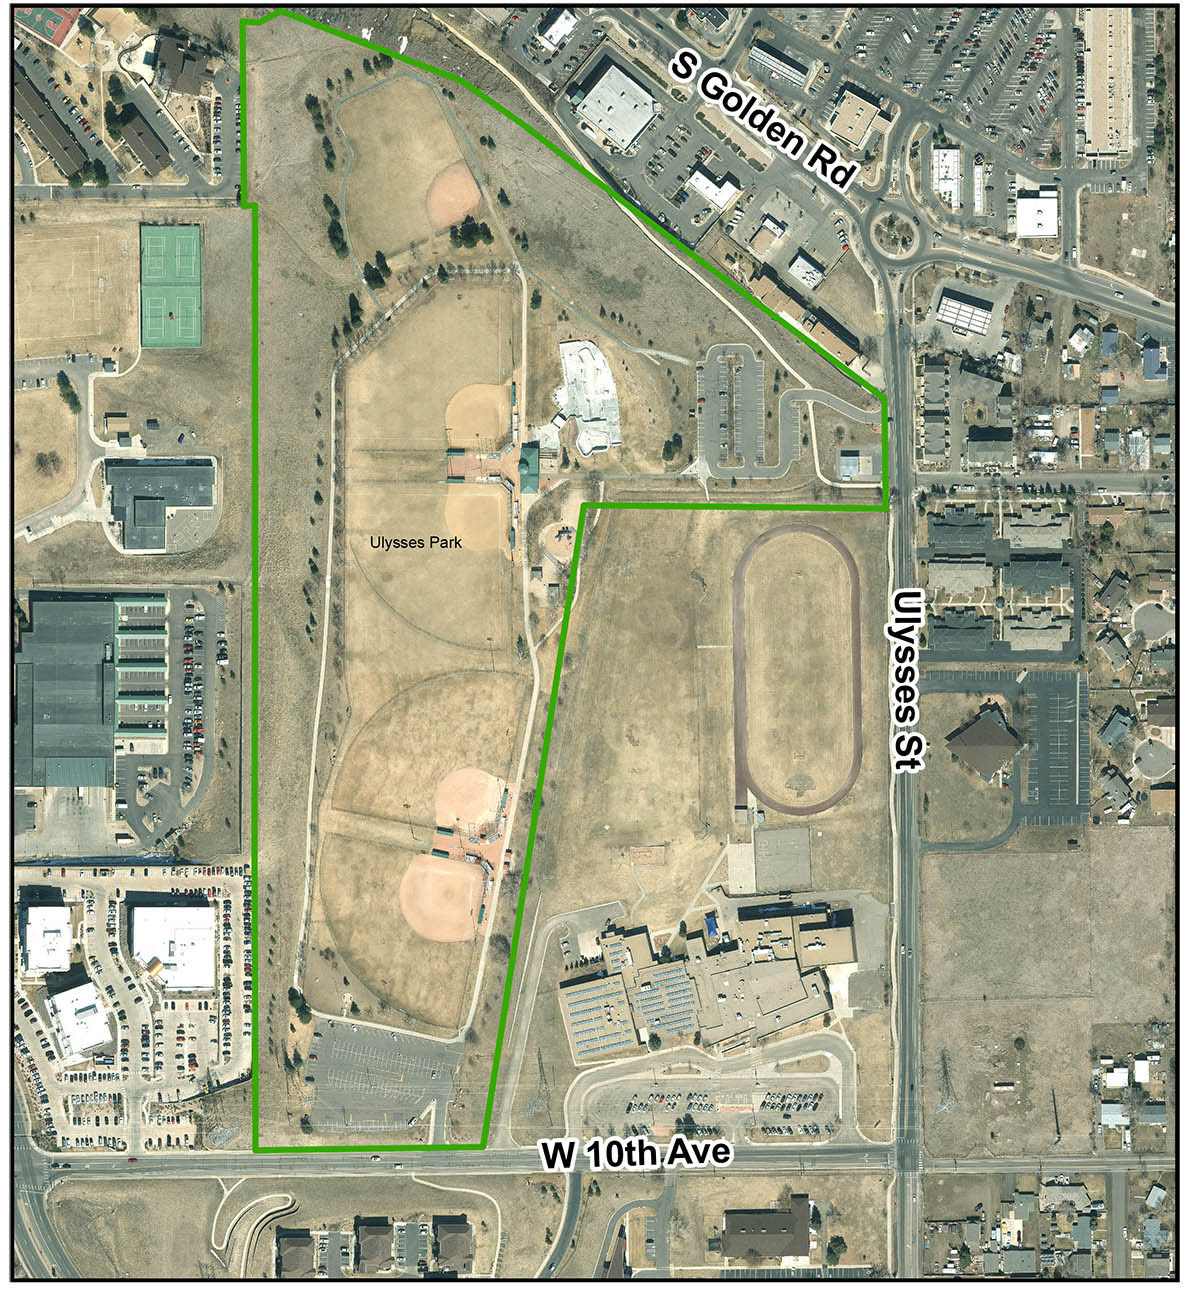 Ulysses Sports Complex Birds Eye View map